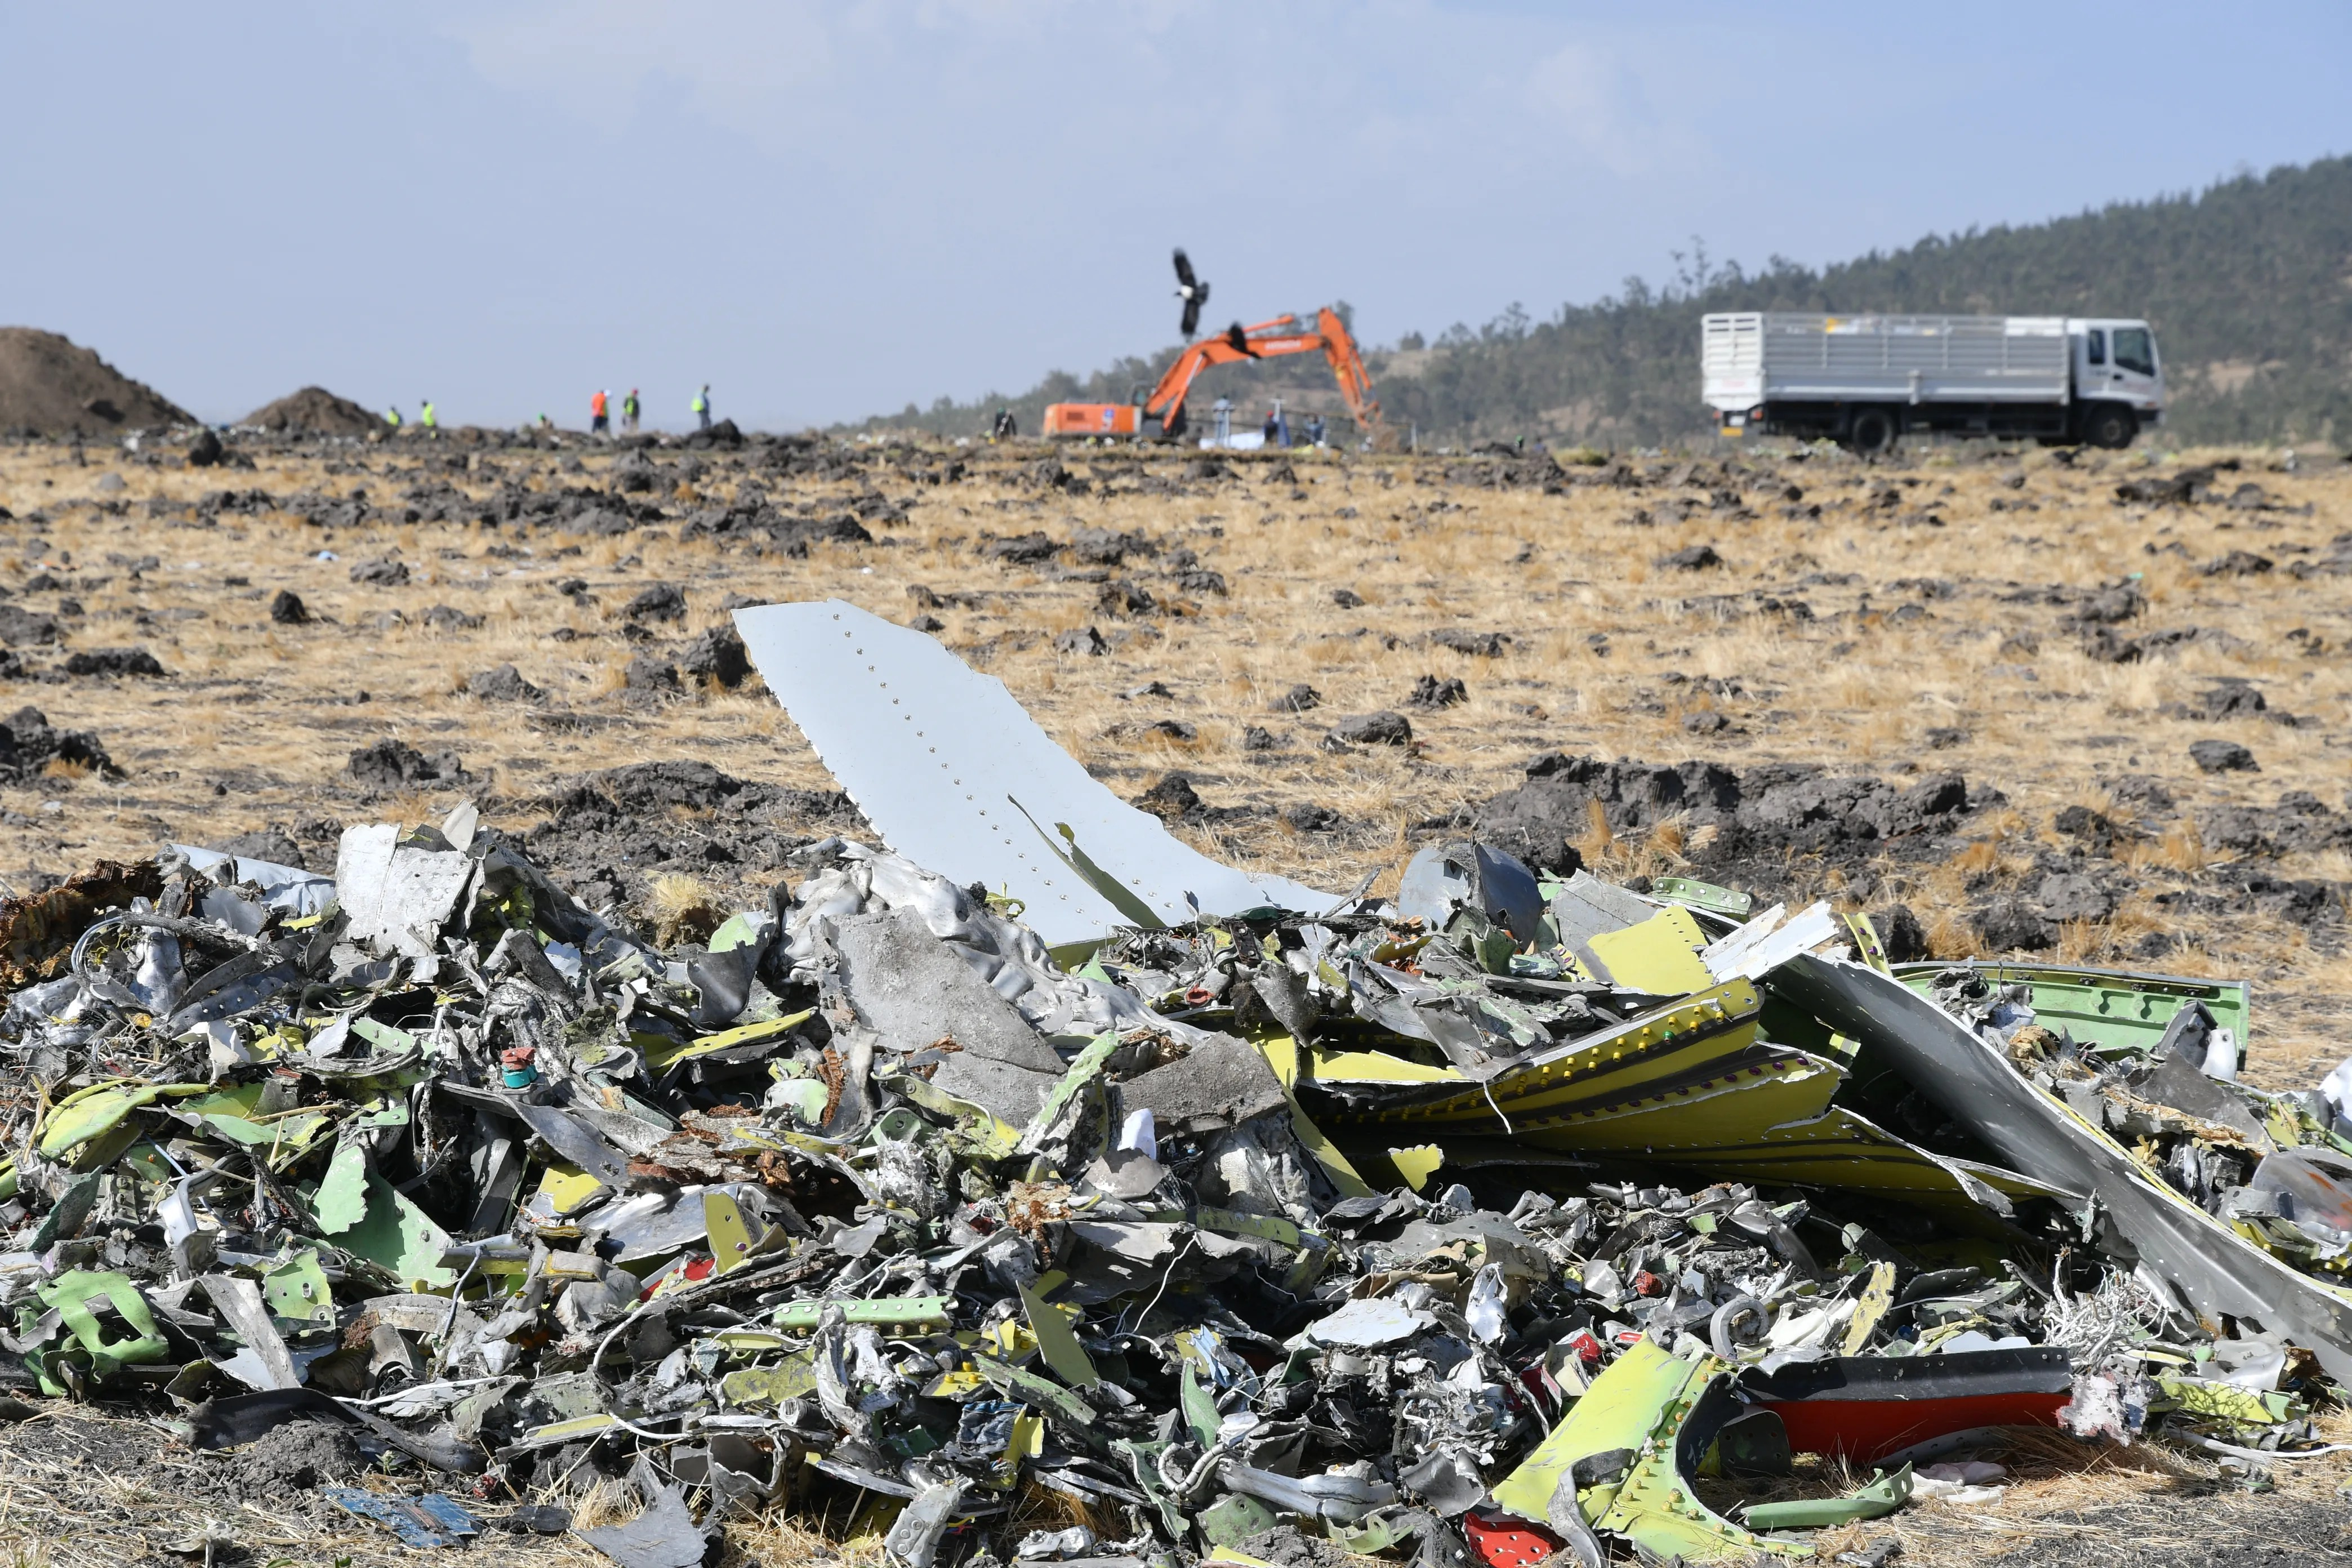 Boeing 737 MAX 8 crashes: Are foreign pilots trained for emergencies?